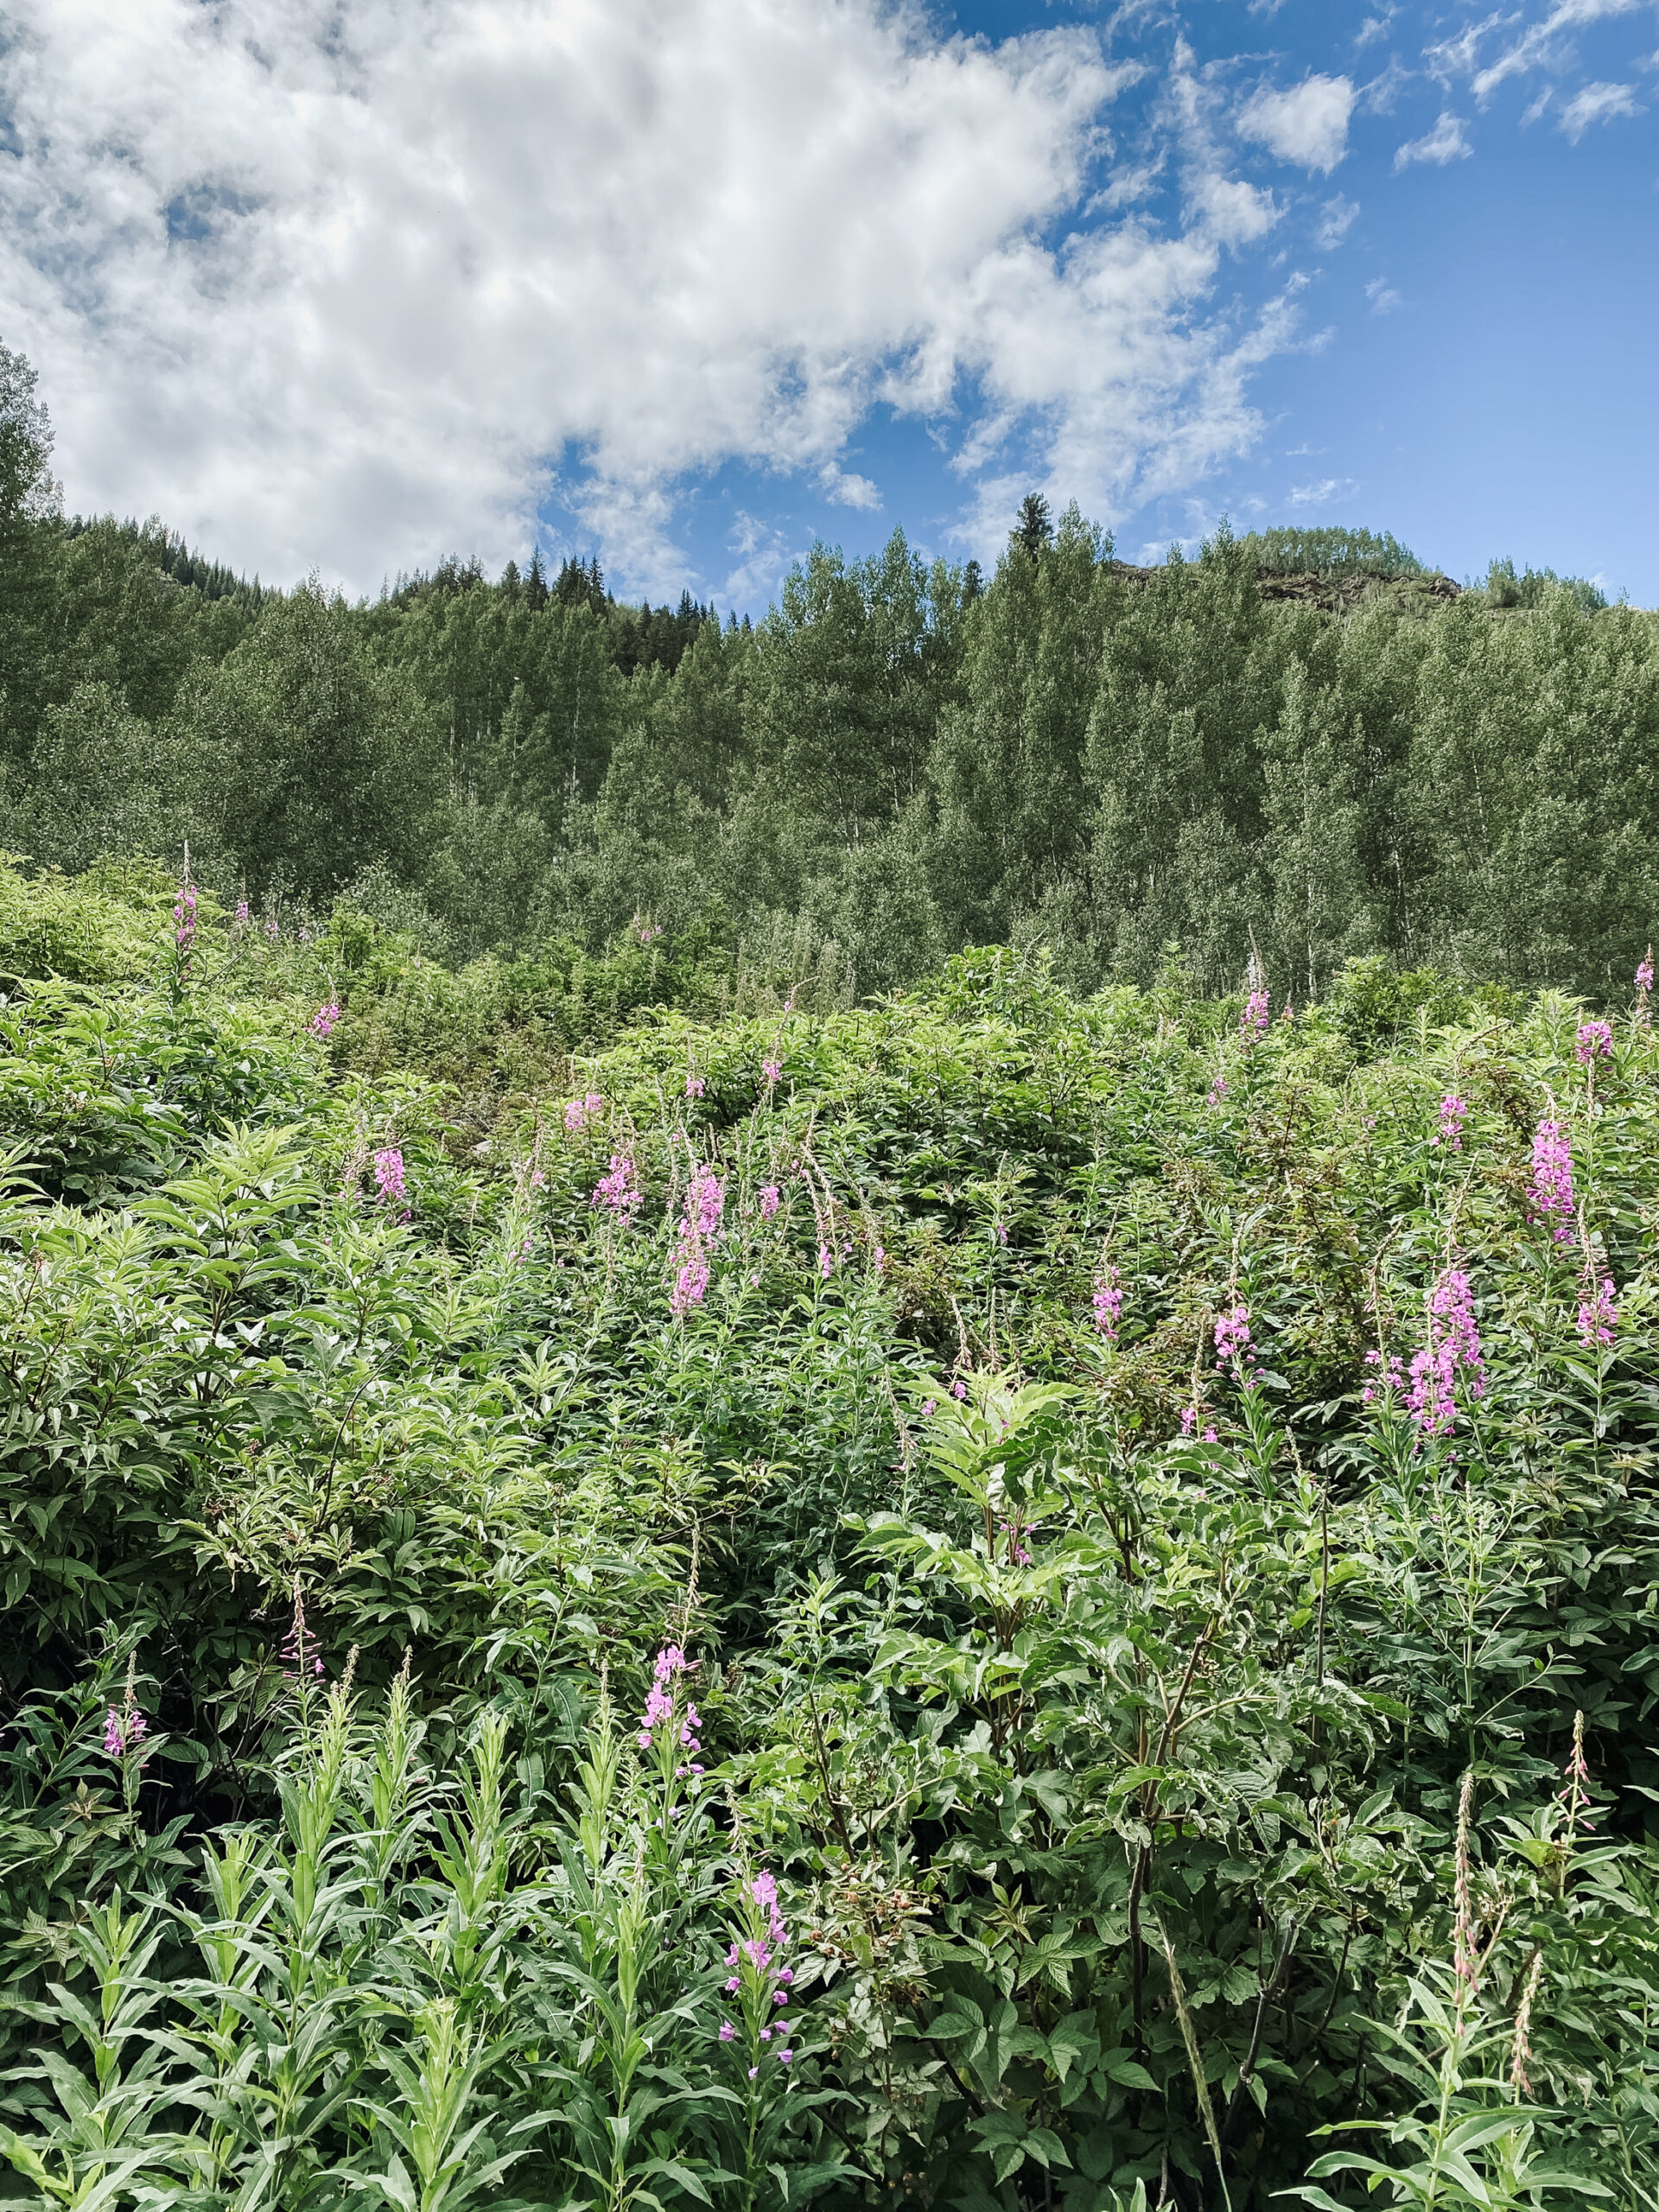 wildflowers in bloom in Maroon Bells hiking area. #thelovedesignedlife #maroonbells #wildflowers